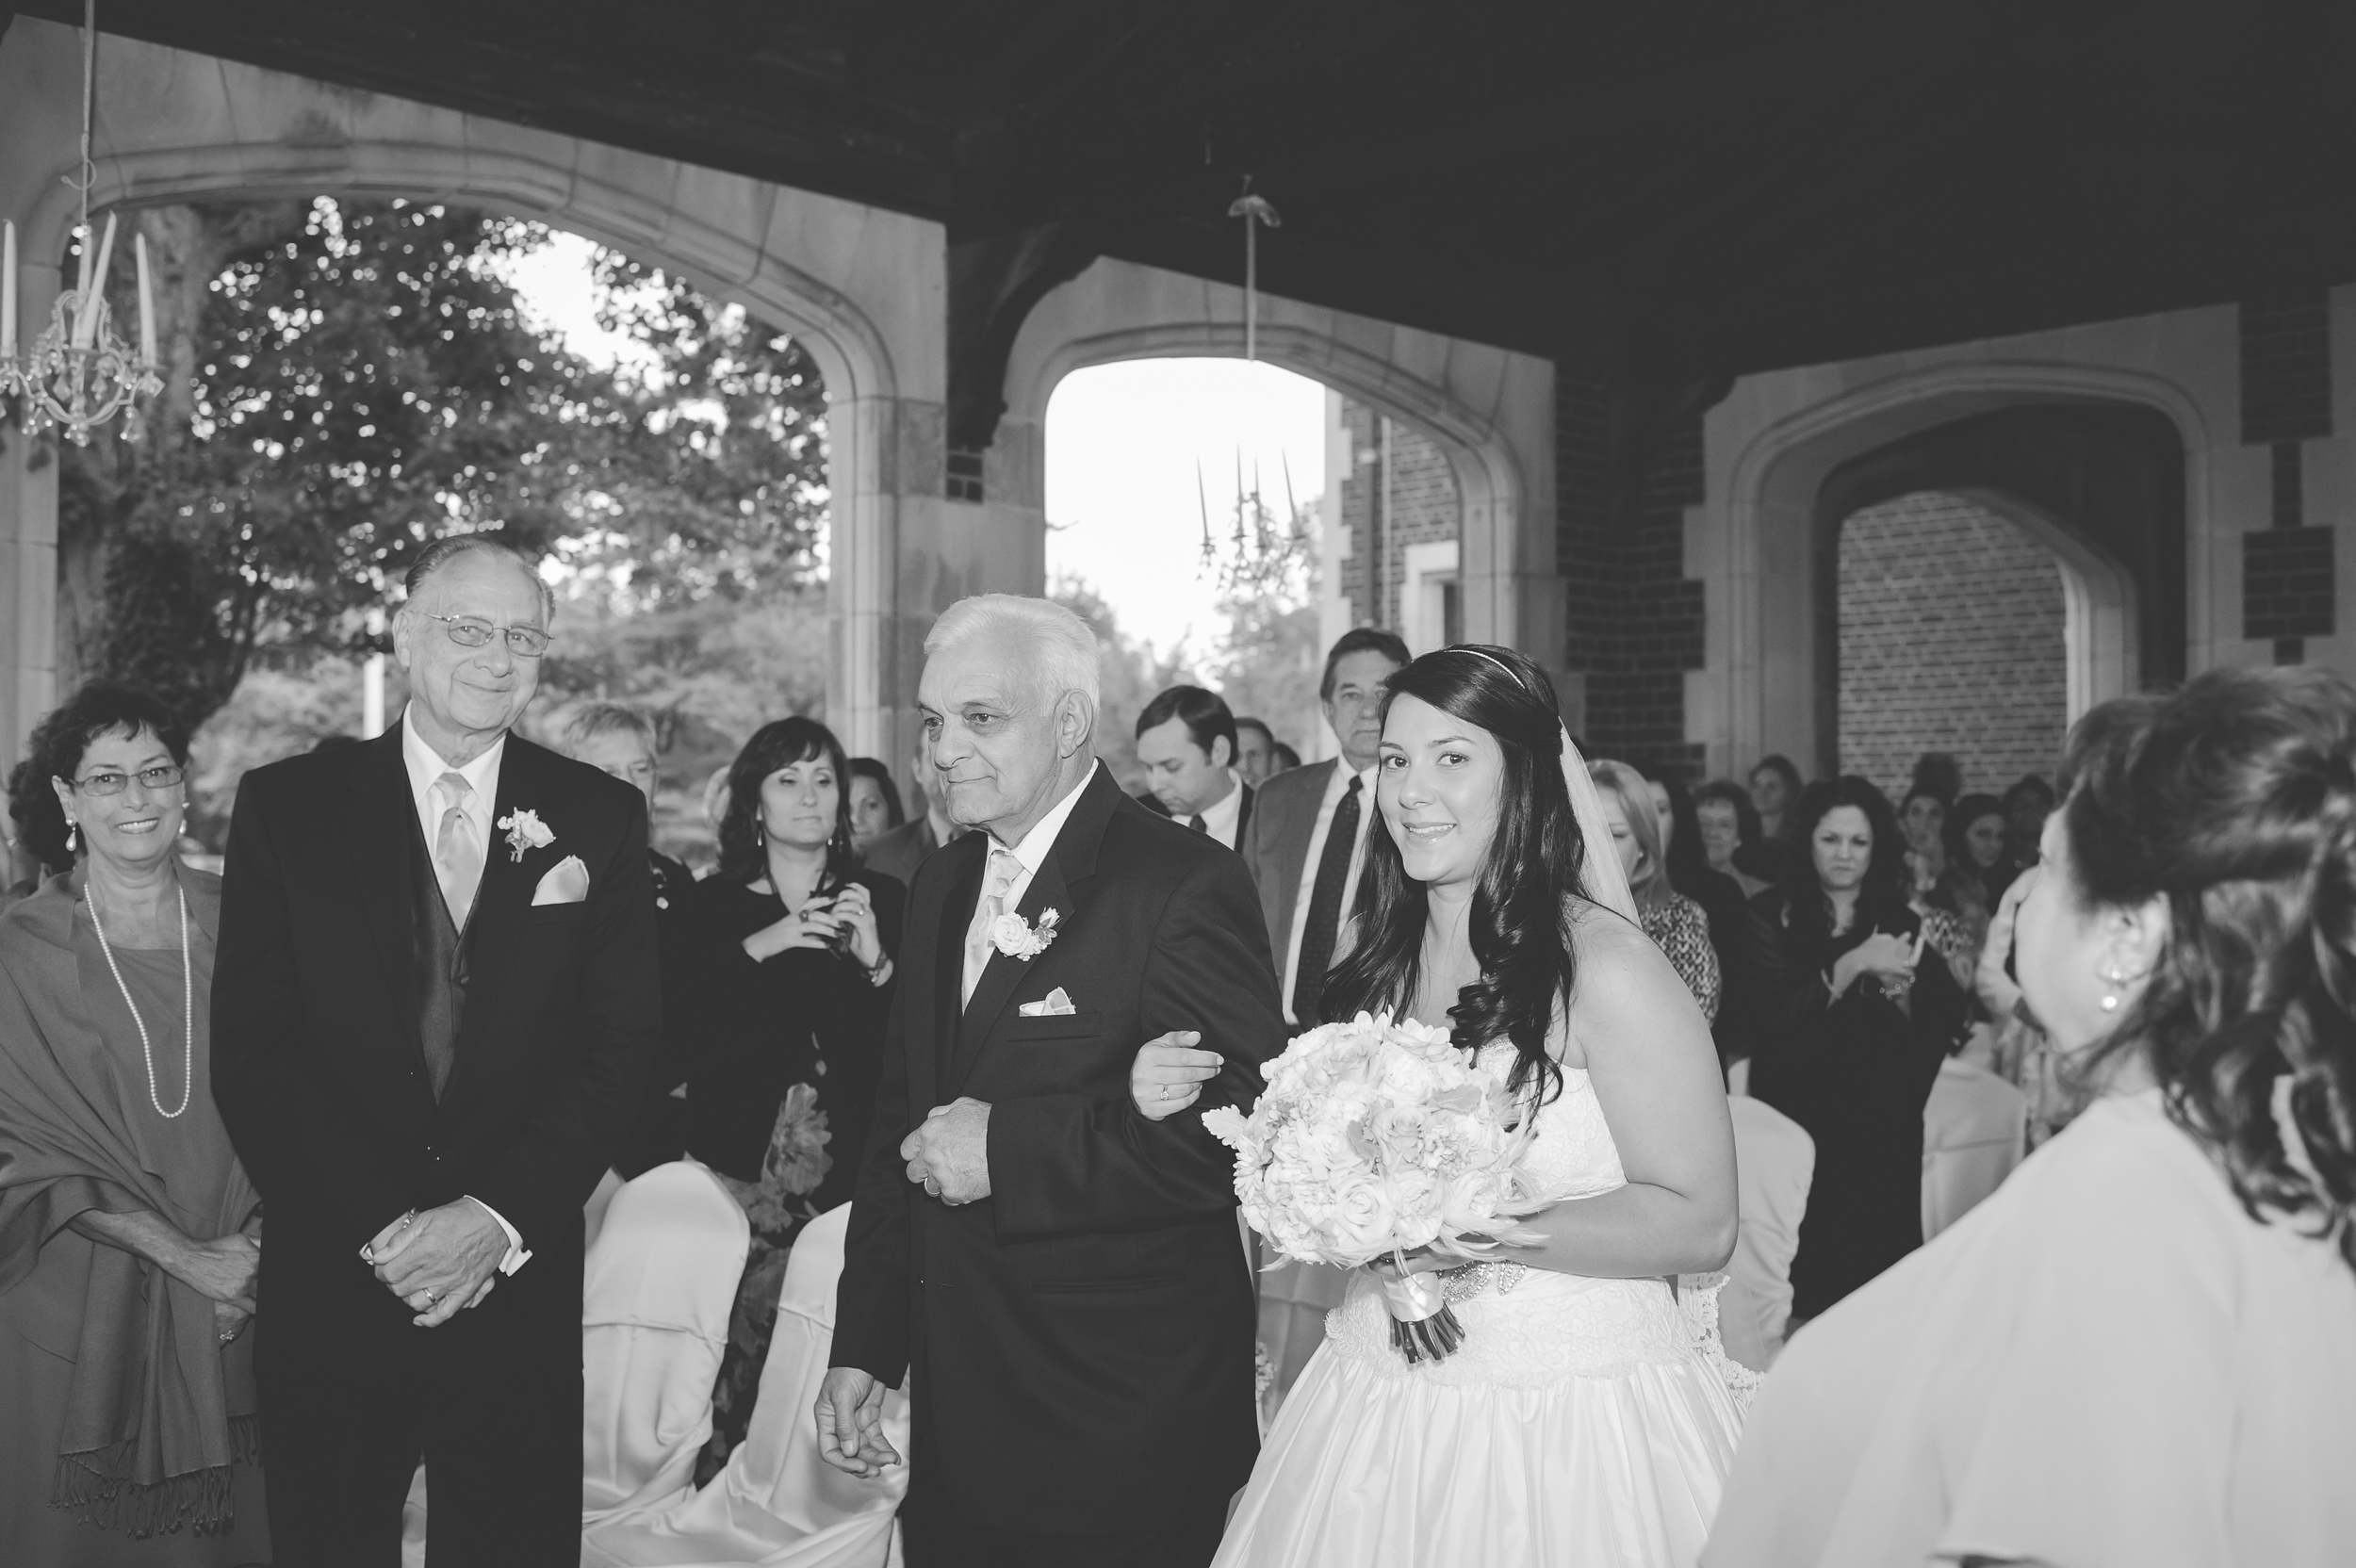 waveny_house_wedding_New_canaan_CT_Amy_Champagne_Events623.jpg